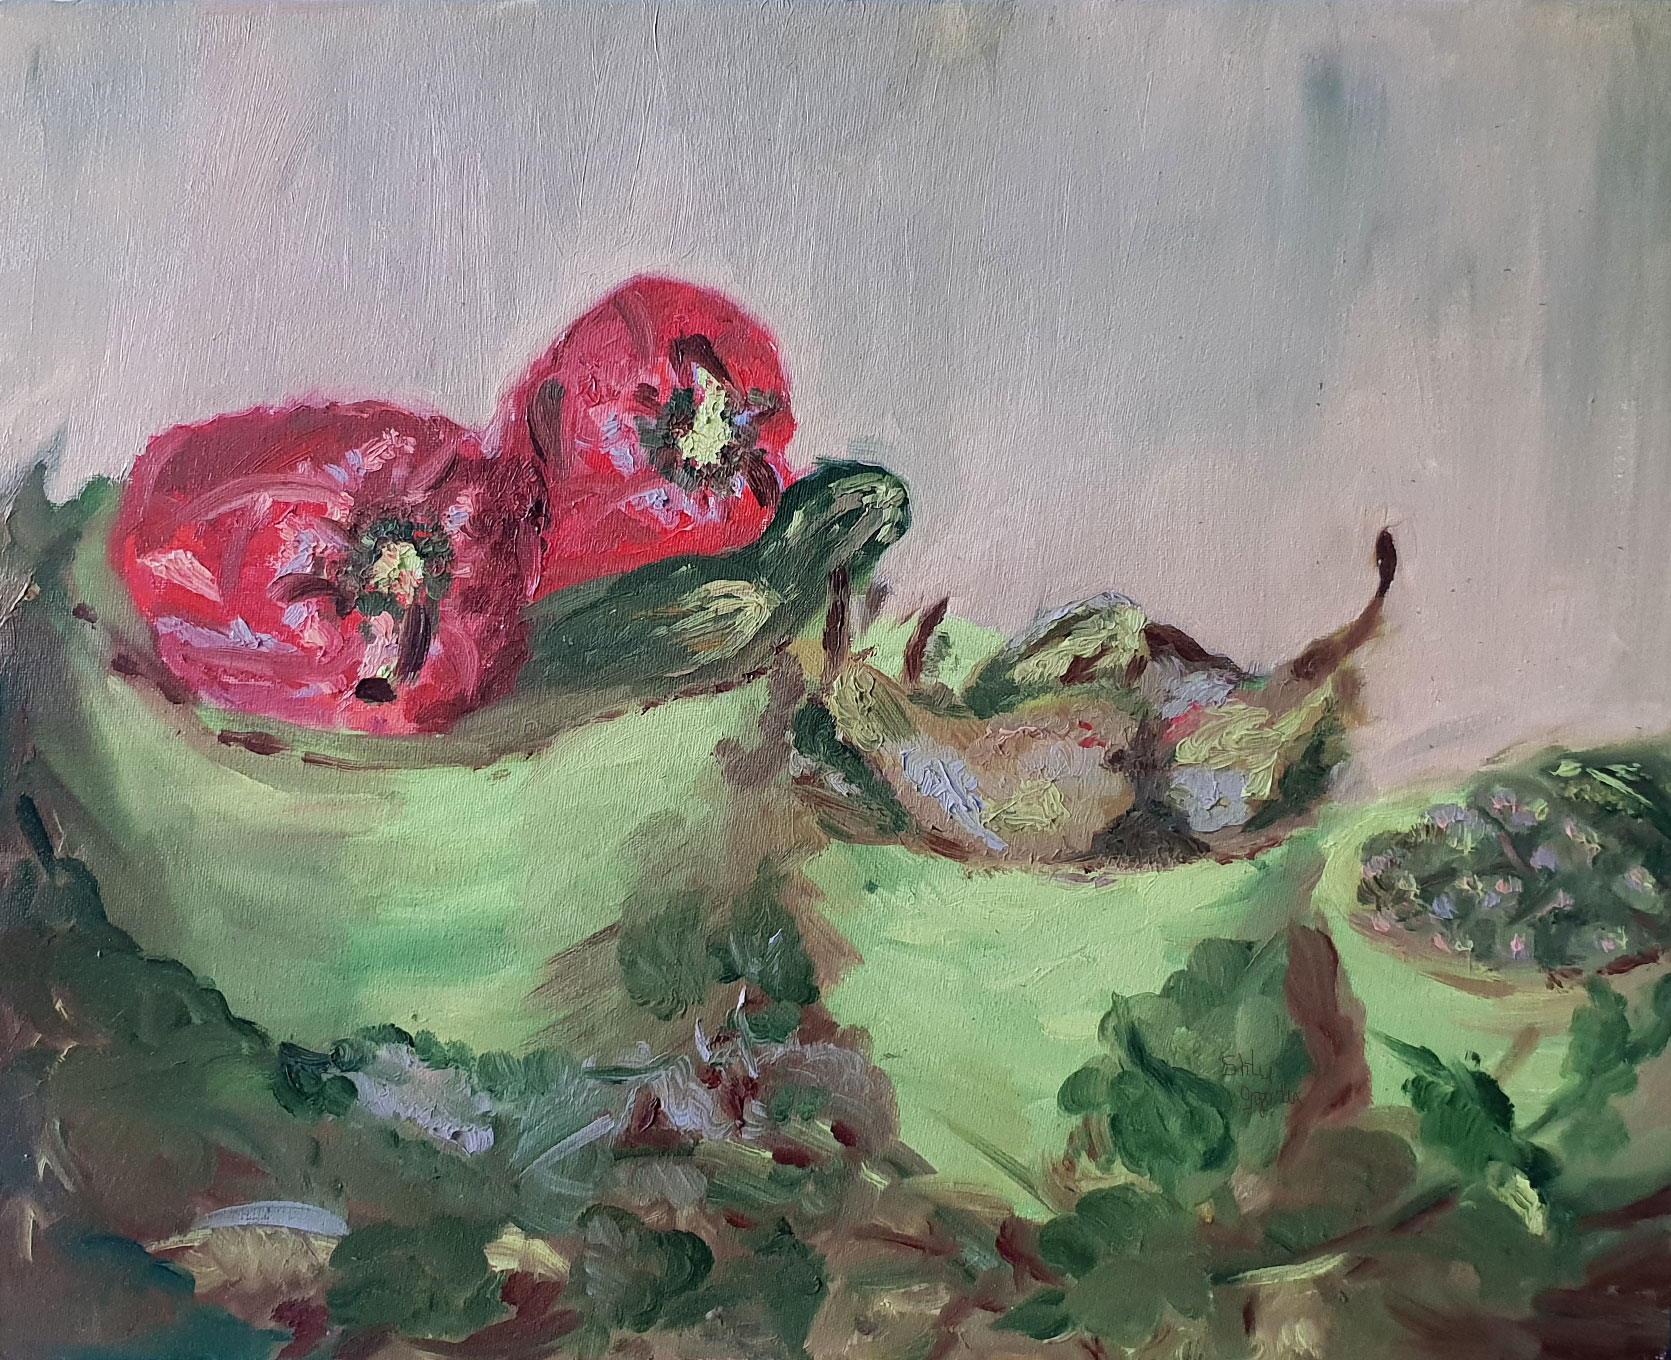 Red Papper Nature Morte (2017)